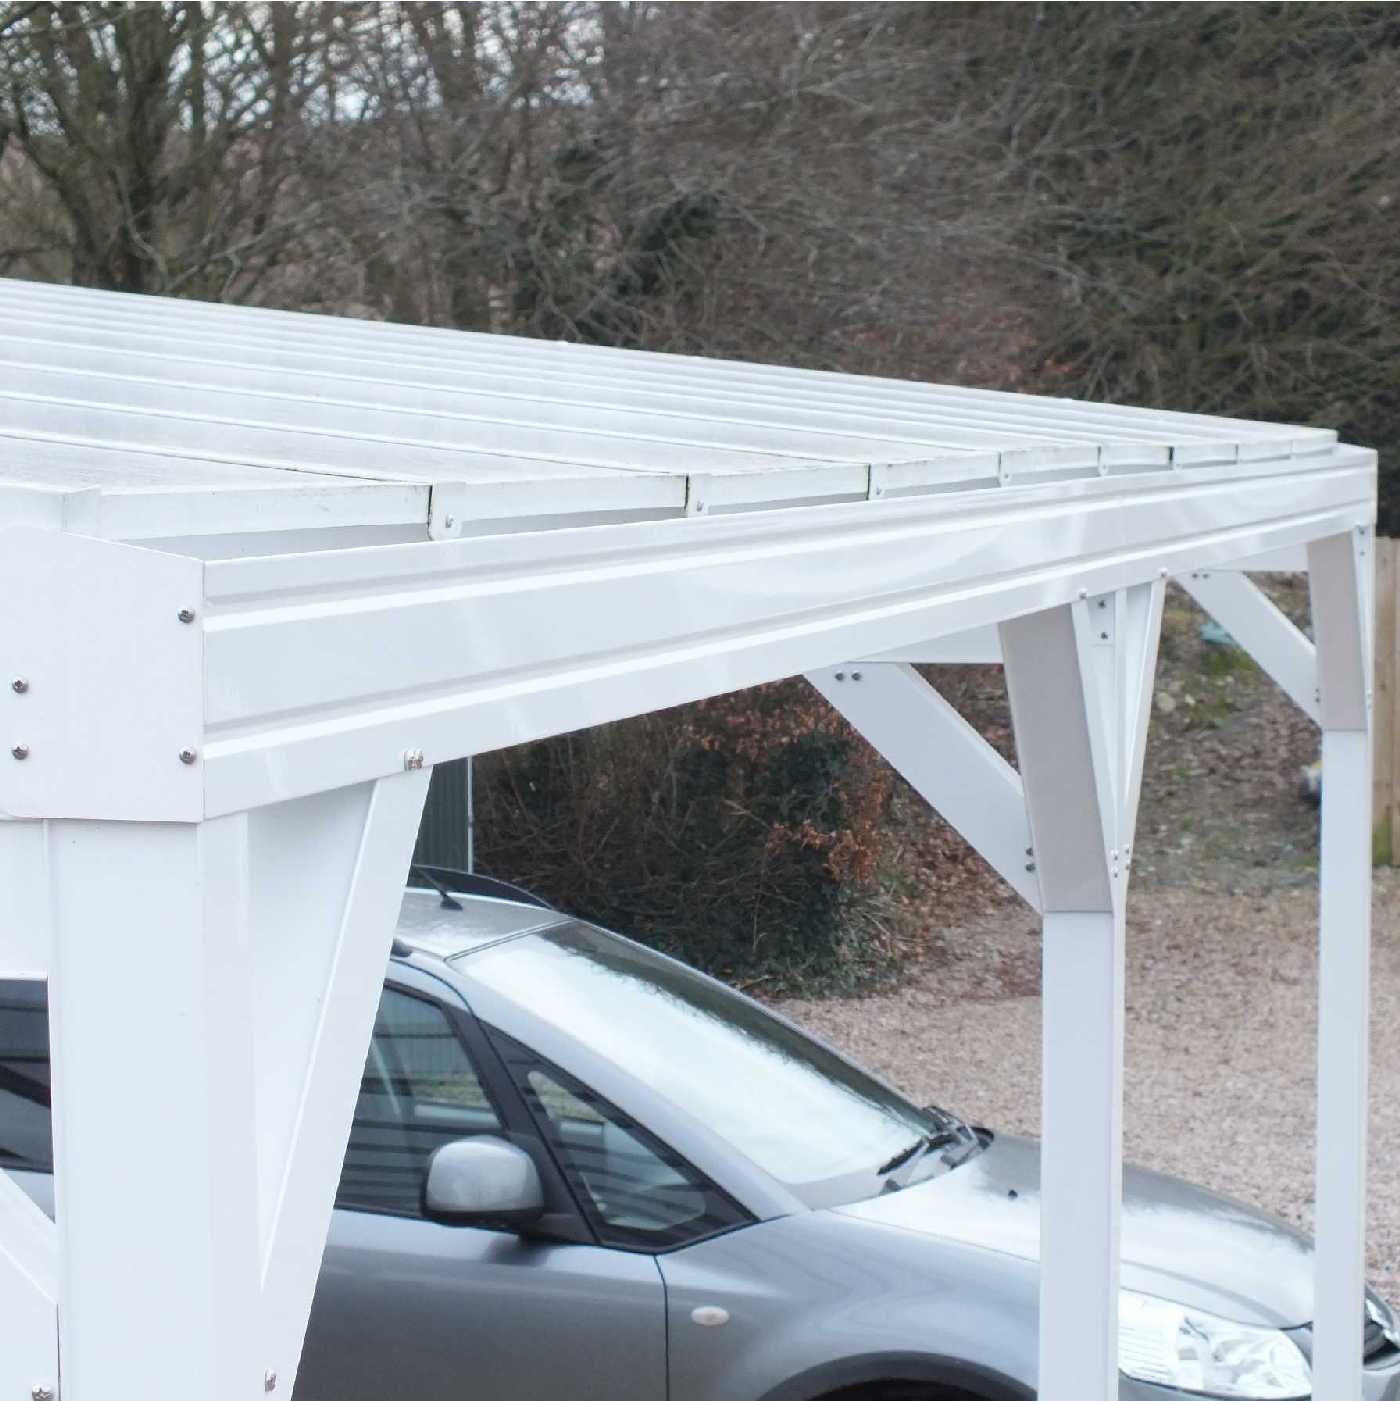 Omega Smart Free-Standing, MonoPitch Roof Canopy with 16mm Polycarbonate Glazing - 7.4m (W) x 2.5m (P), (8) Supporting Posts from Omega Build